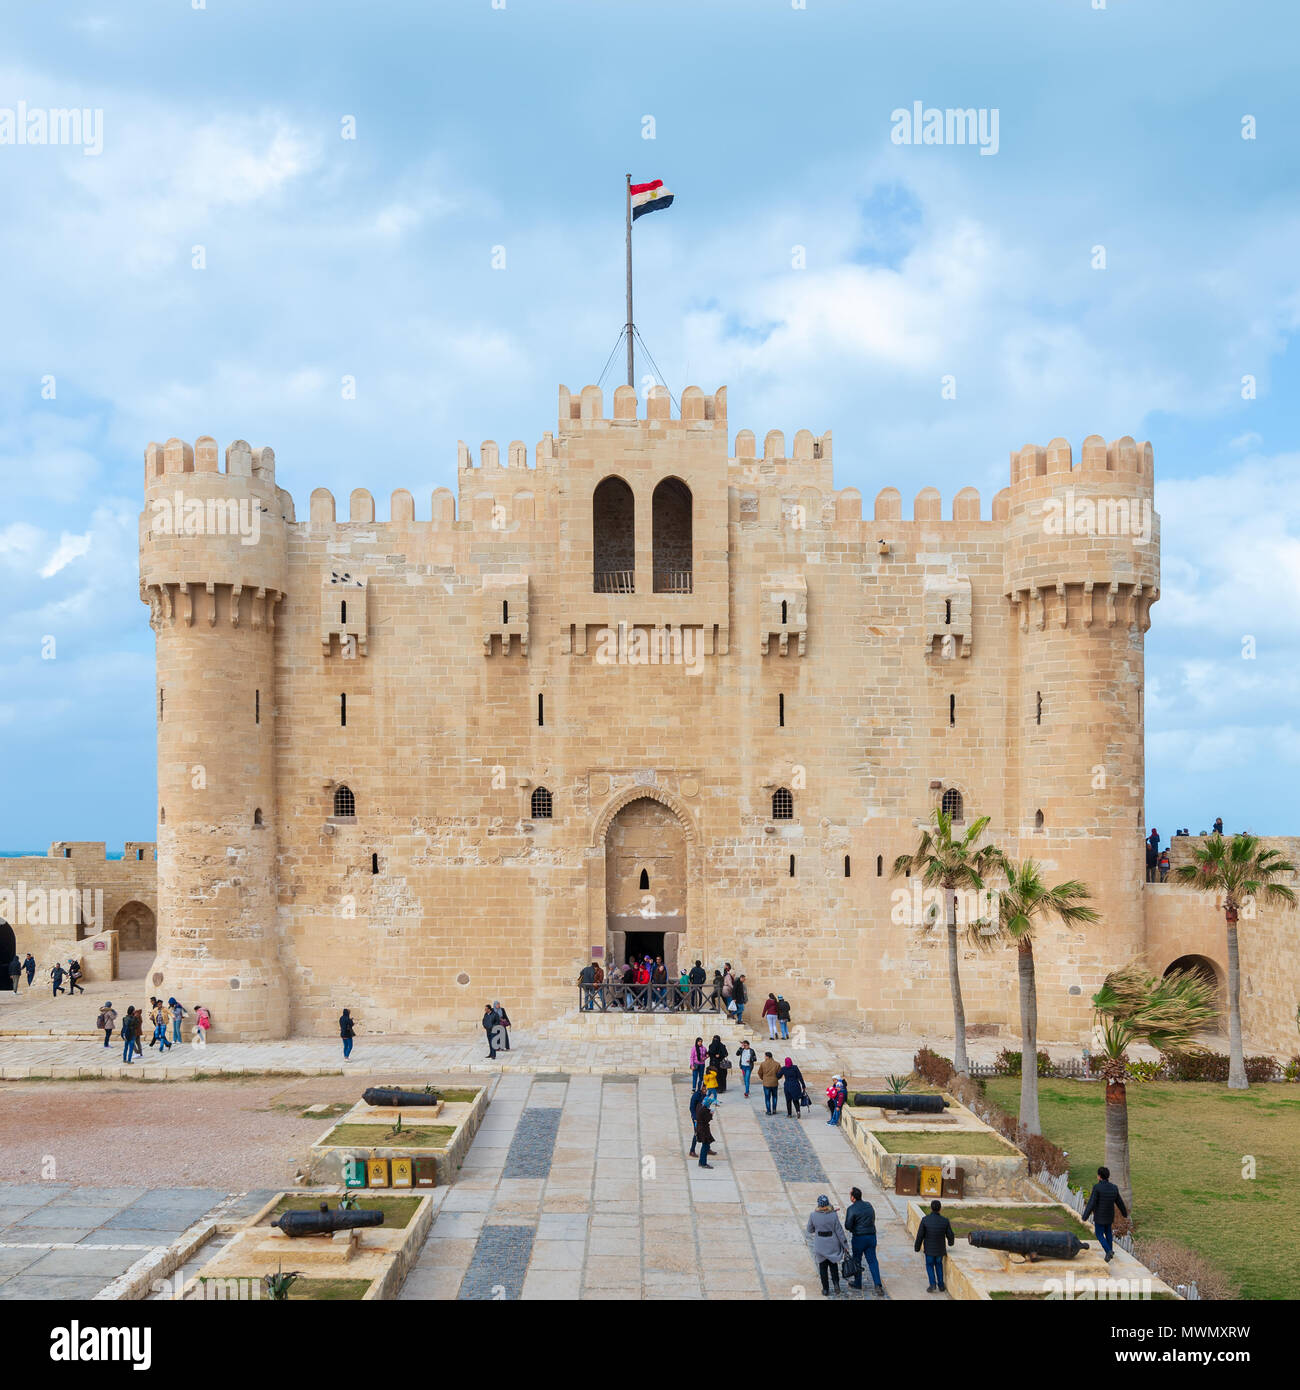 Alexandria, Egypt - January 25, 2018: Citadel of Qaitbay, a 15th century defensive fortress located on the Mediterranean sea coast, established in 147 - Stock Image